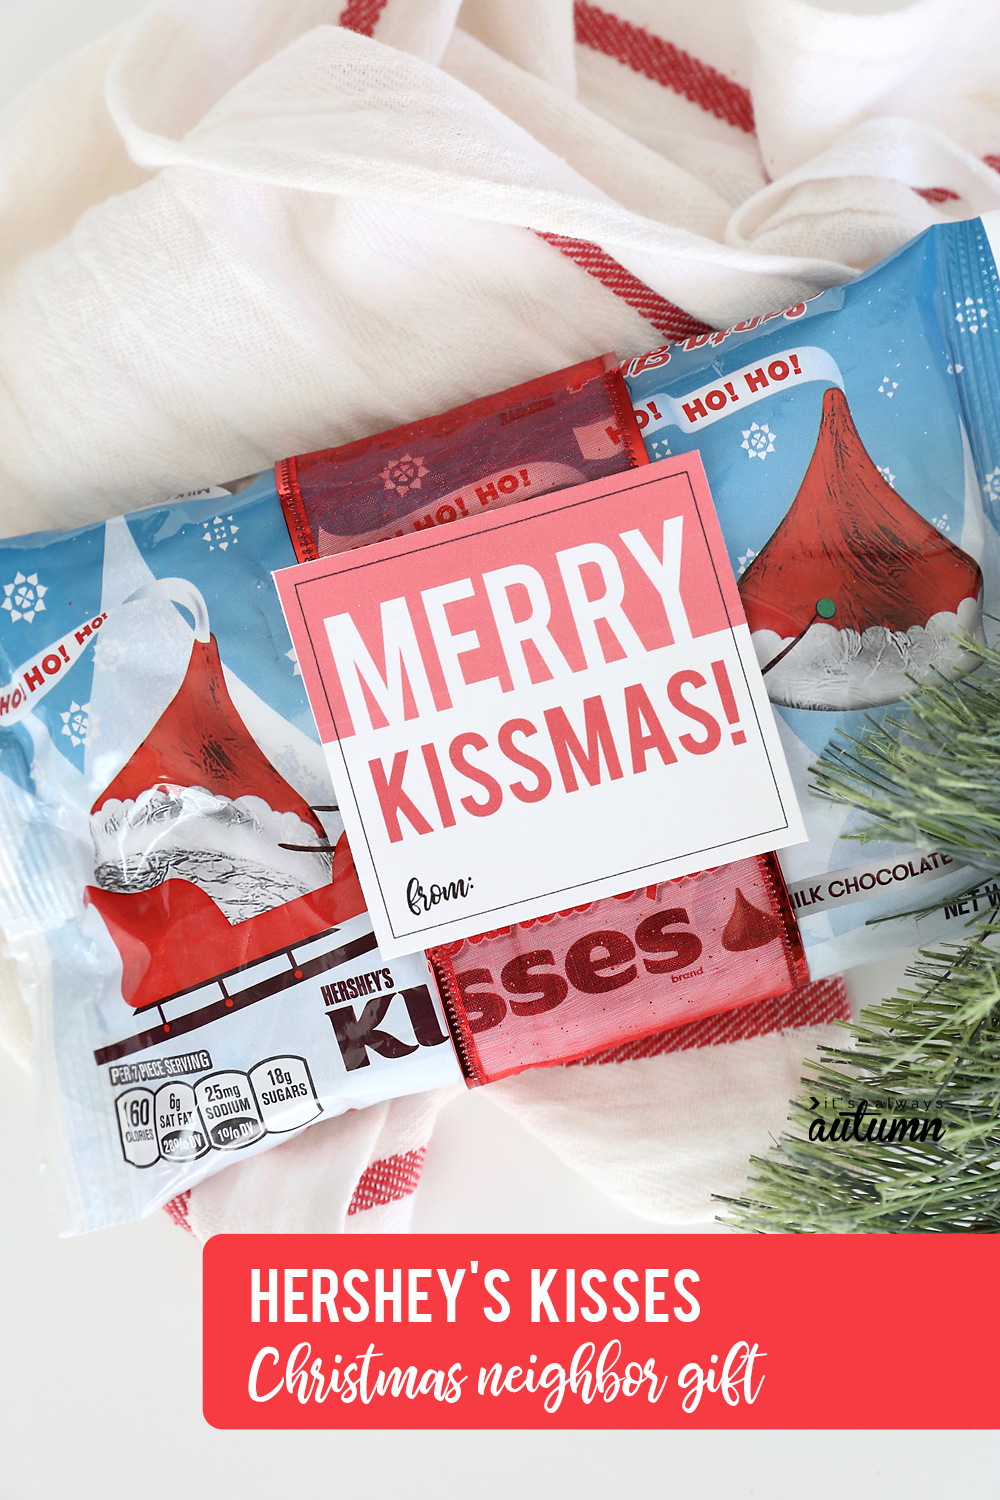 17 easy Christmas neighbor gift ideas with printable tags! Hershey's kisses neighbor gift idea.